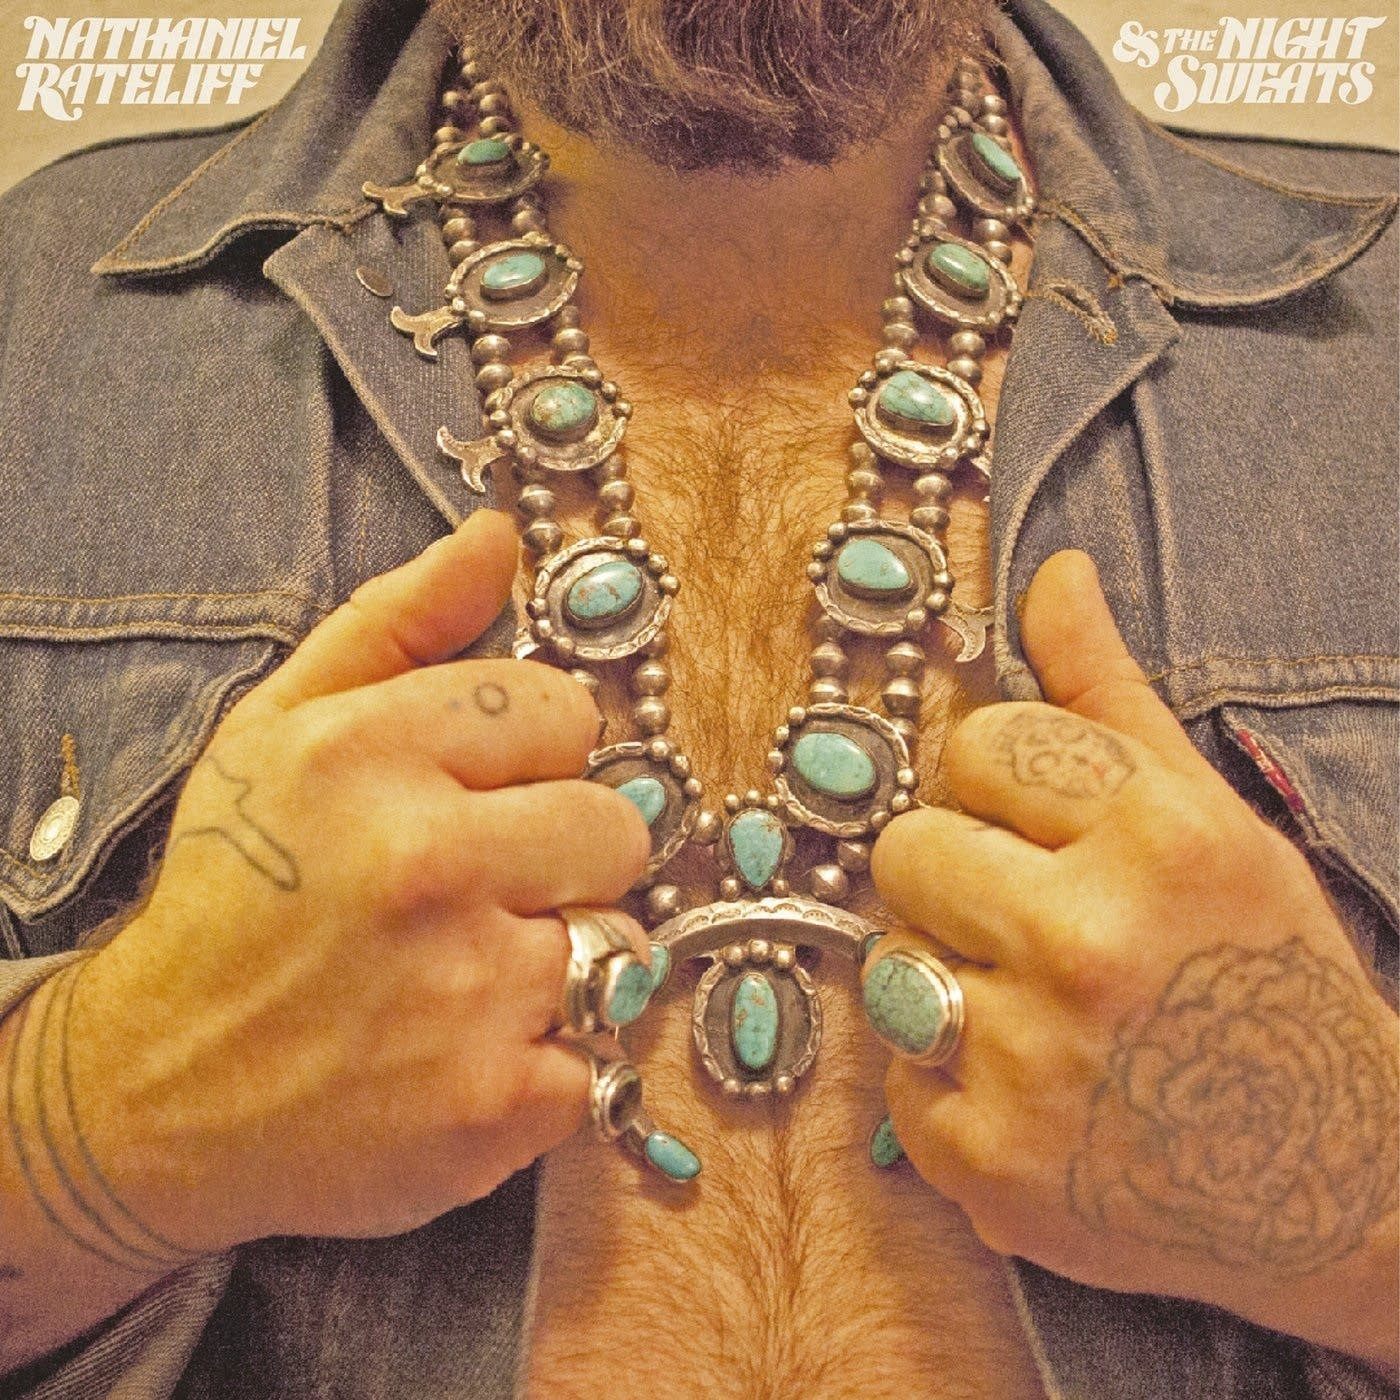 Nathaniel Rateliff & The Night Sweats, self-titled